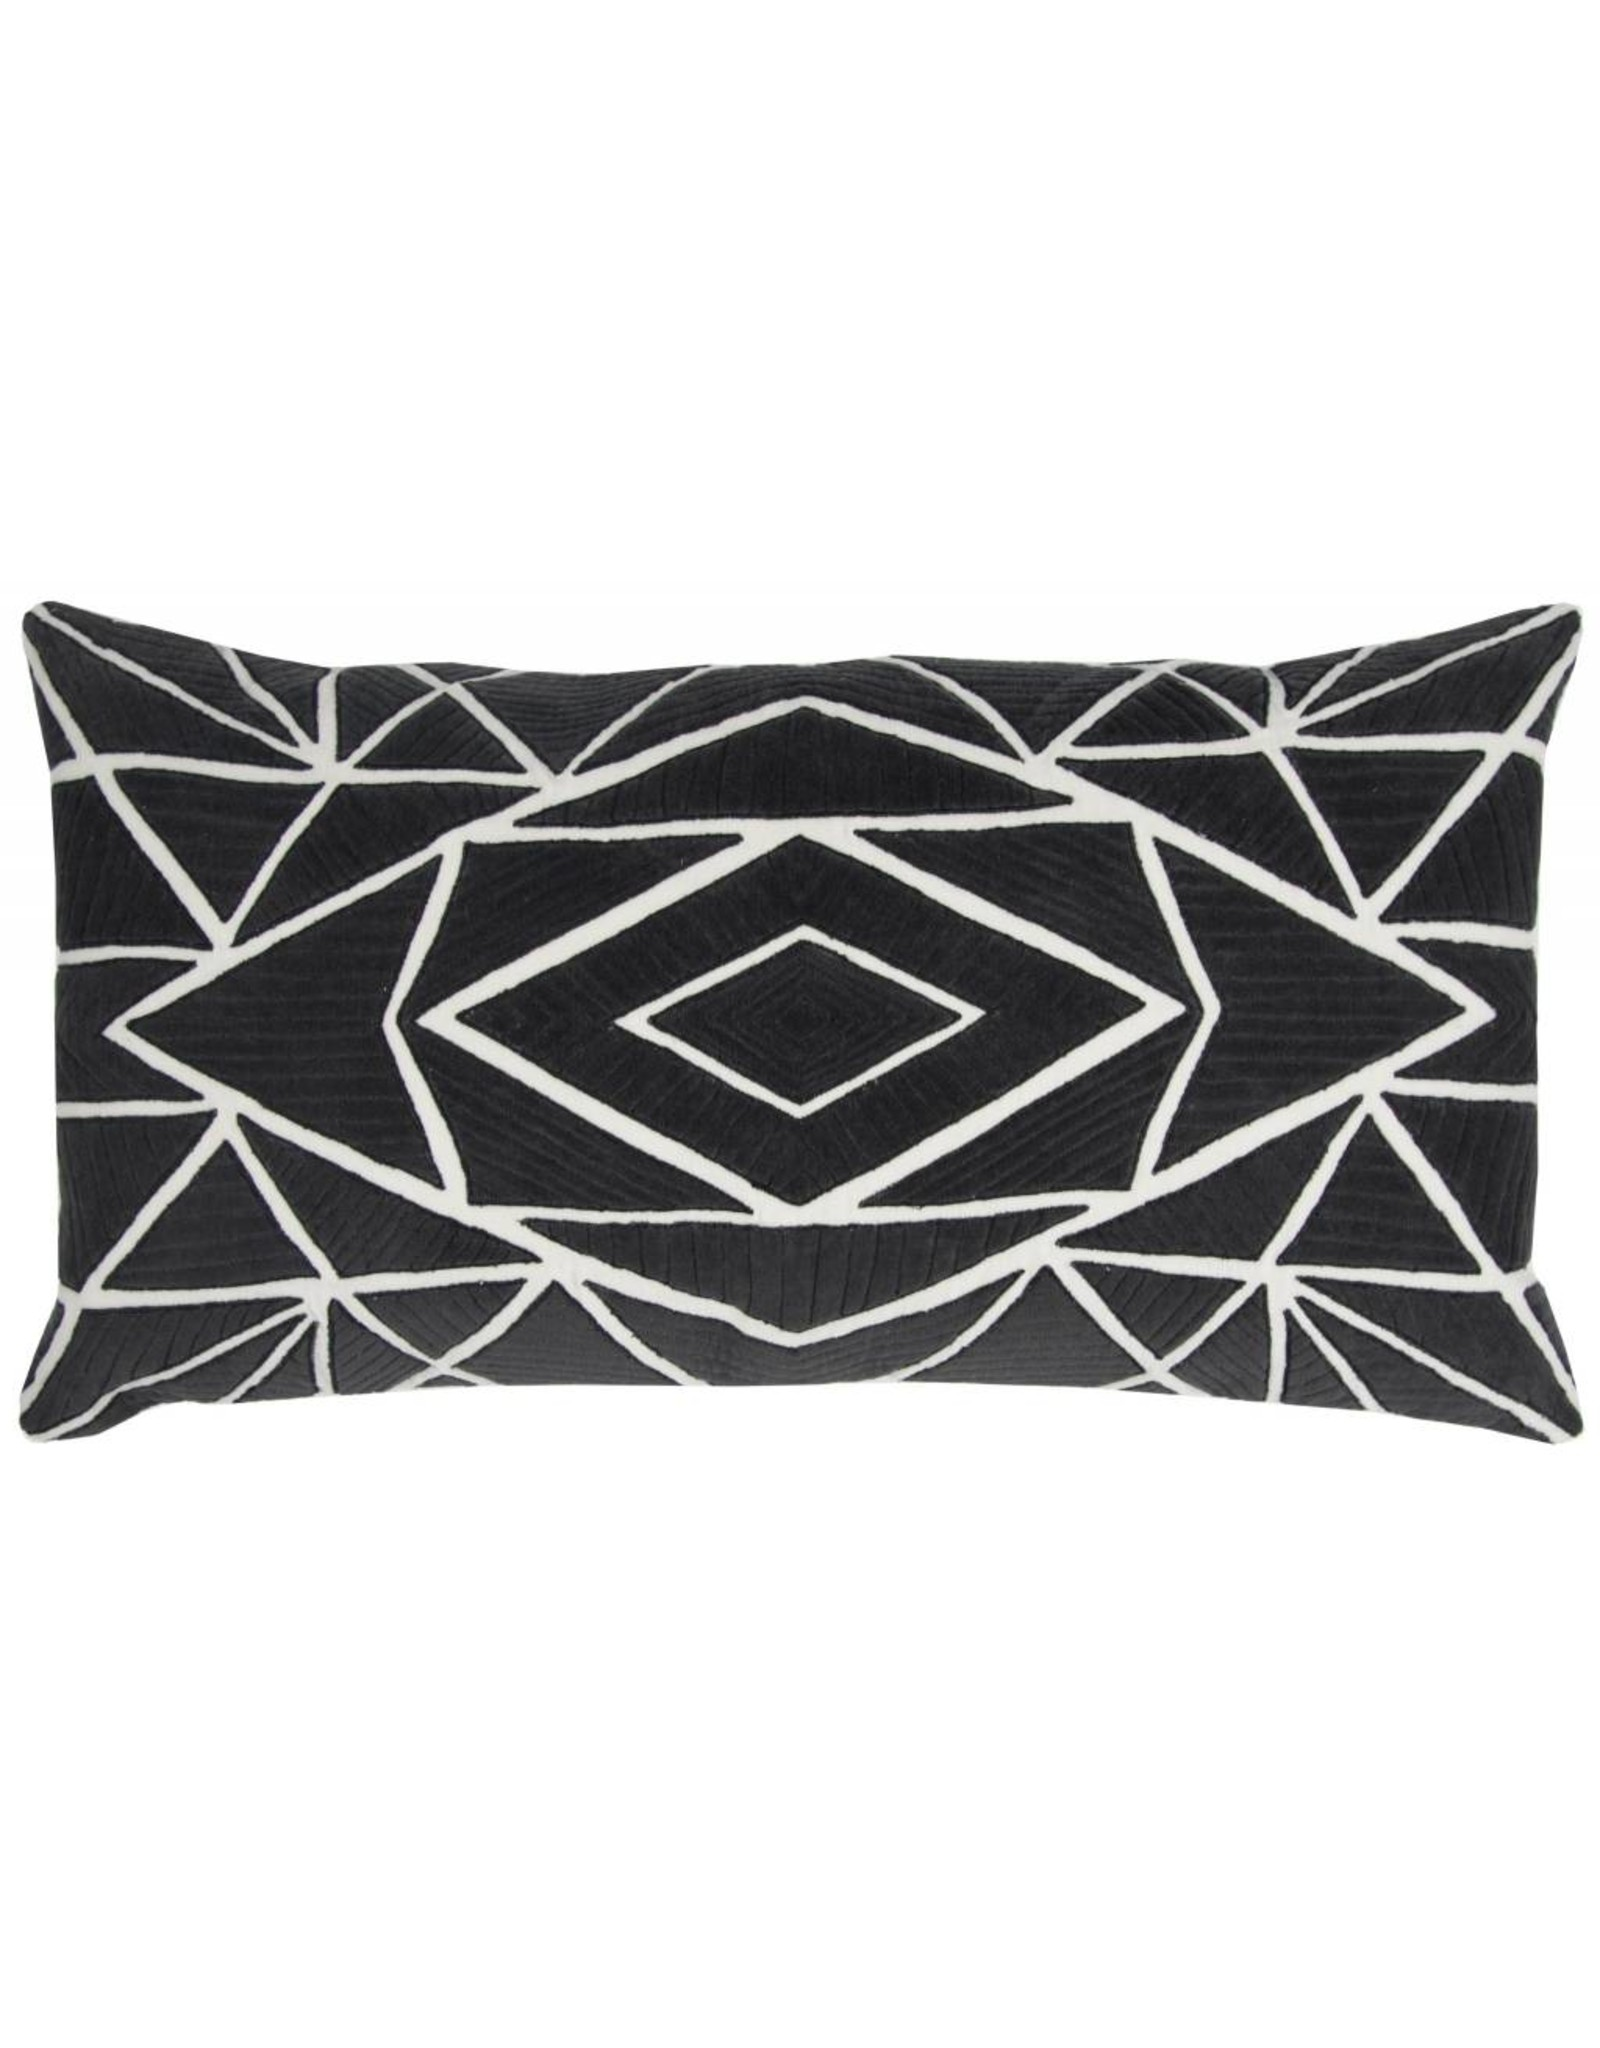 Rizzy Home Black White pillow 14x26